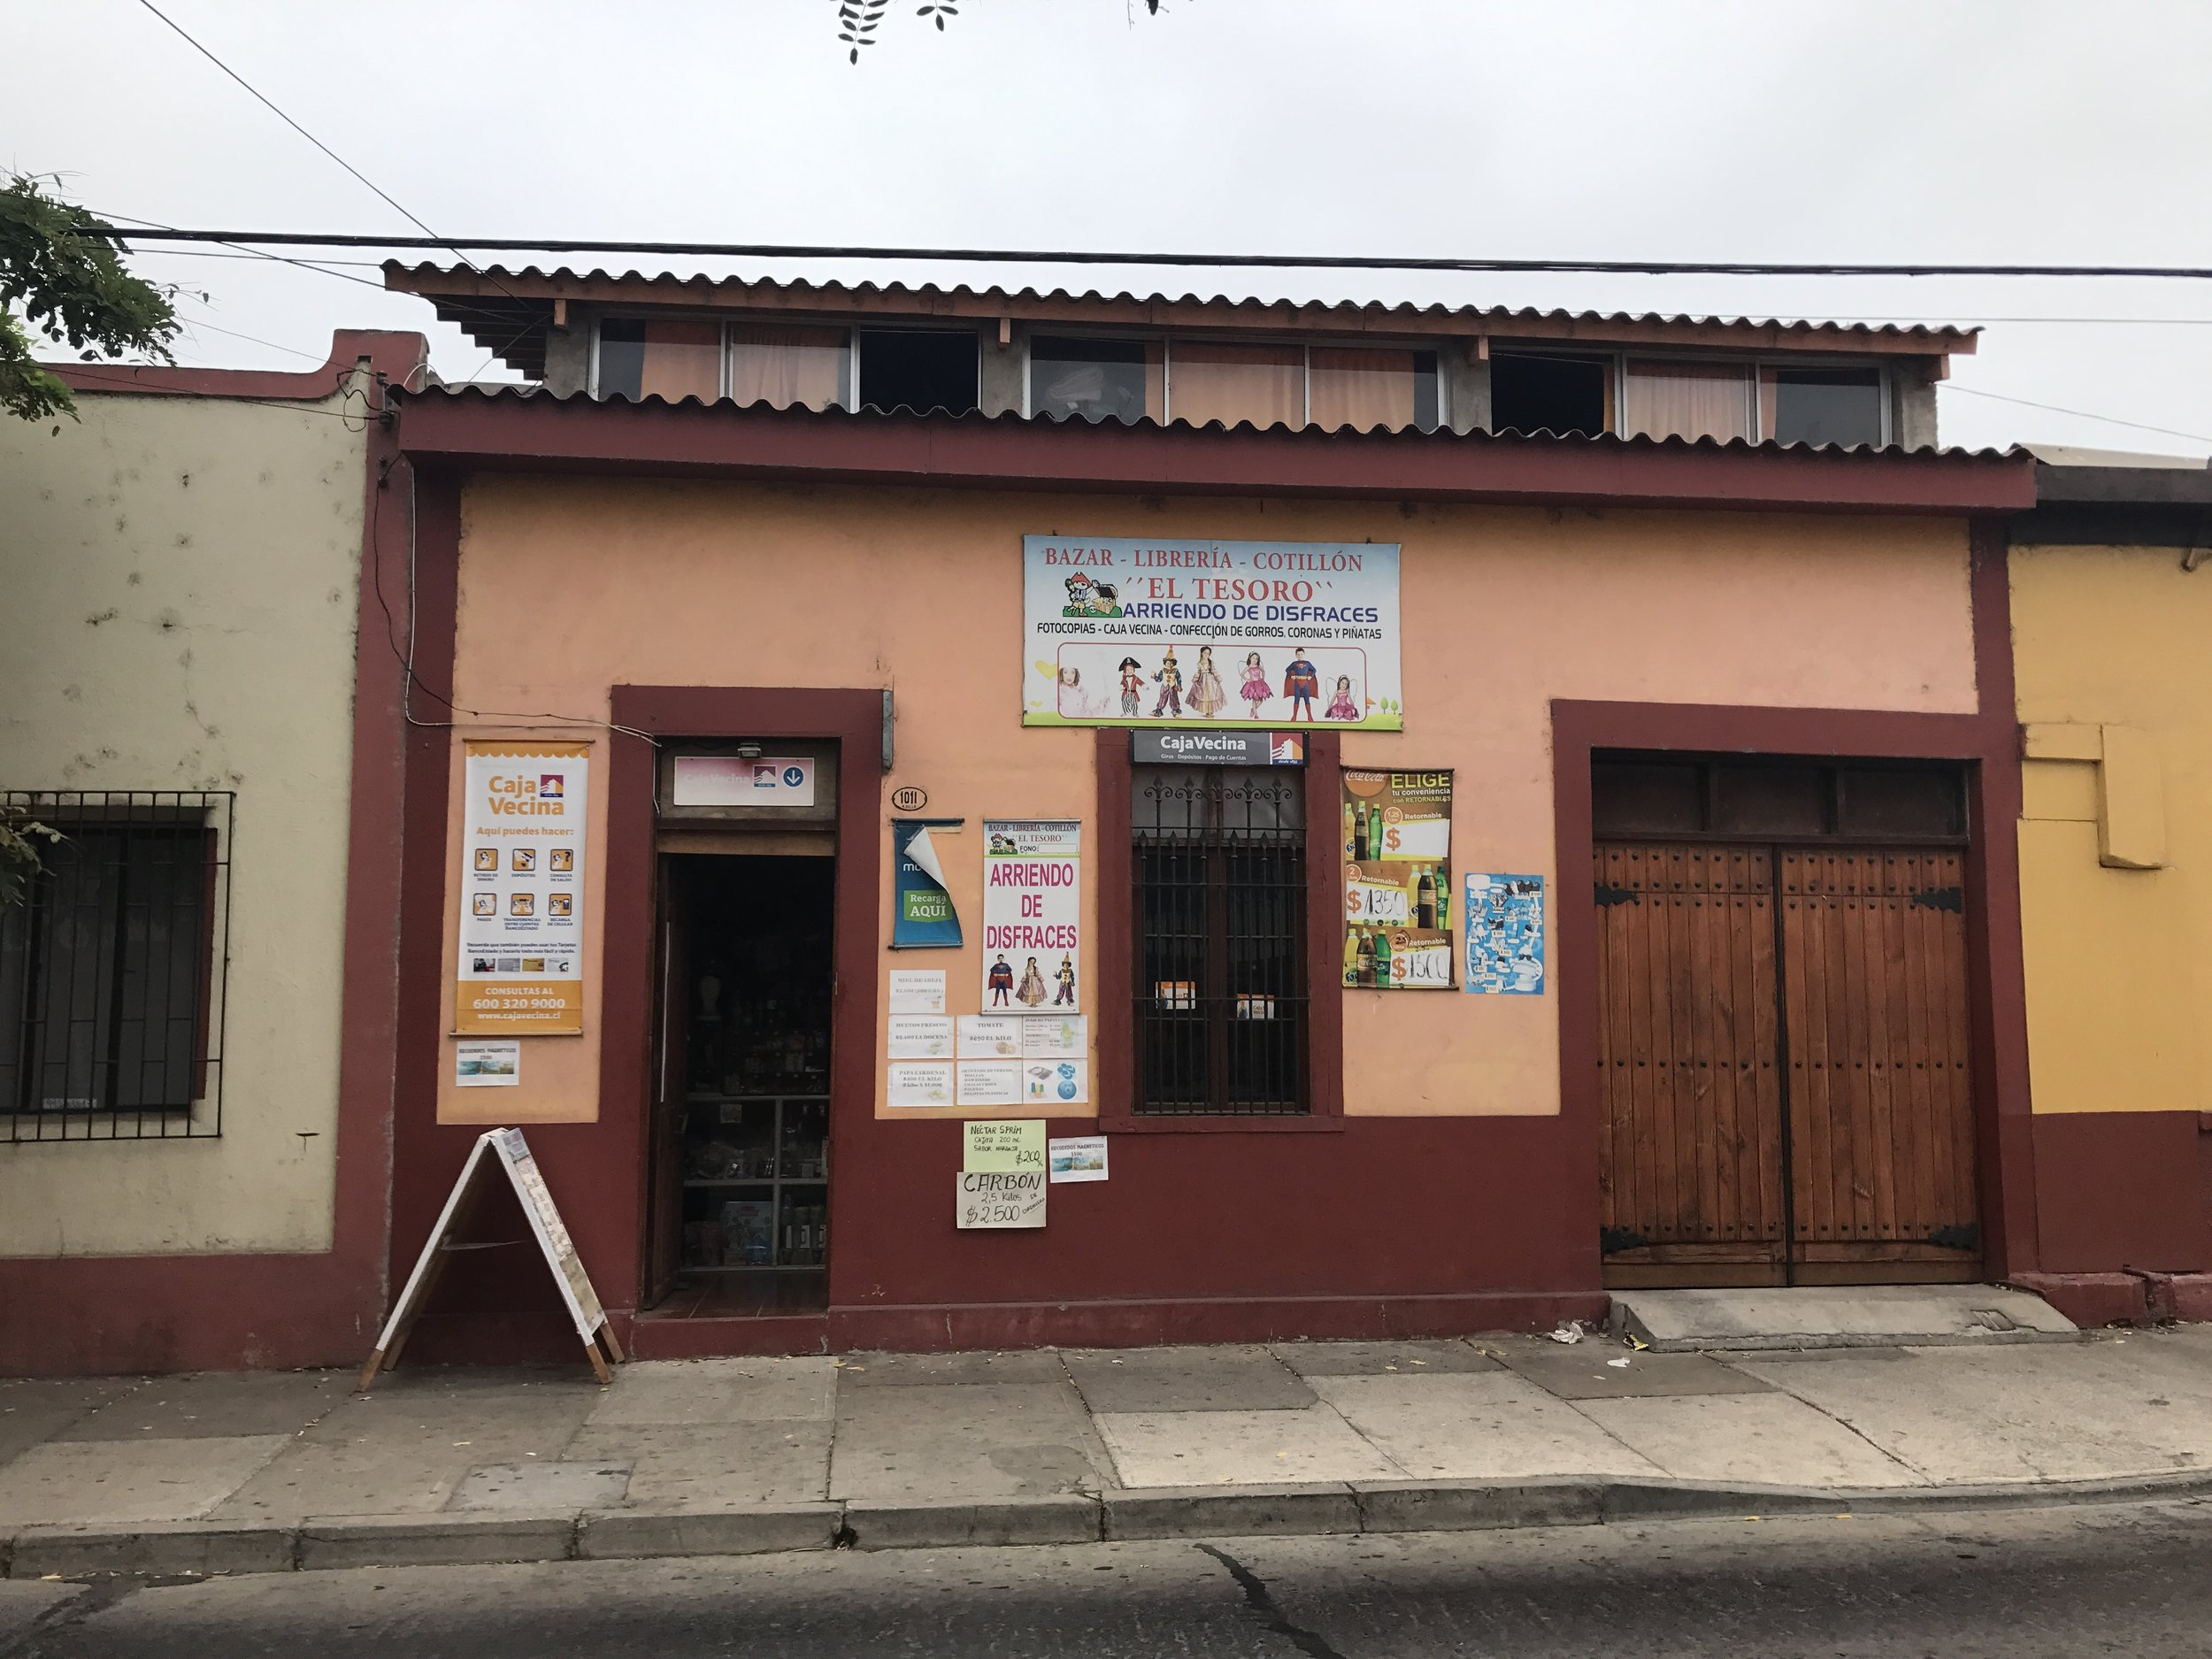 Arquitectura in La Serena is a mix of colonial and adobe style houses. This is a store that sells everything from books to children's costumes.